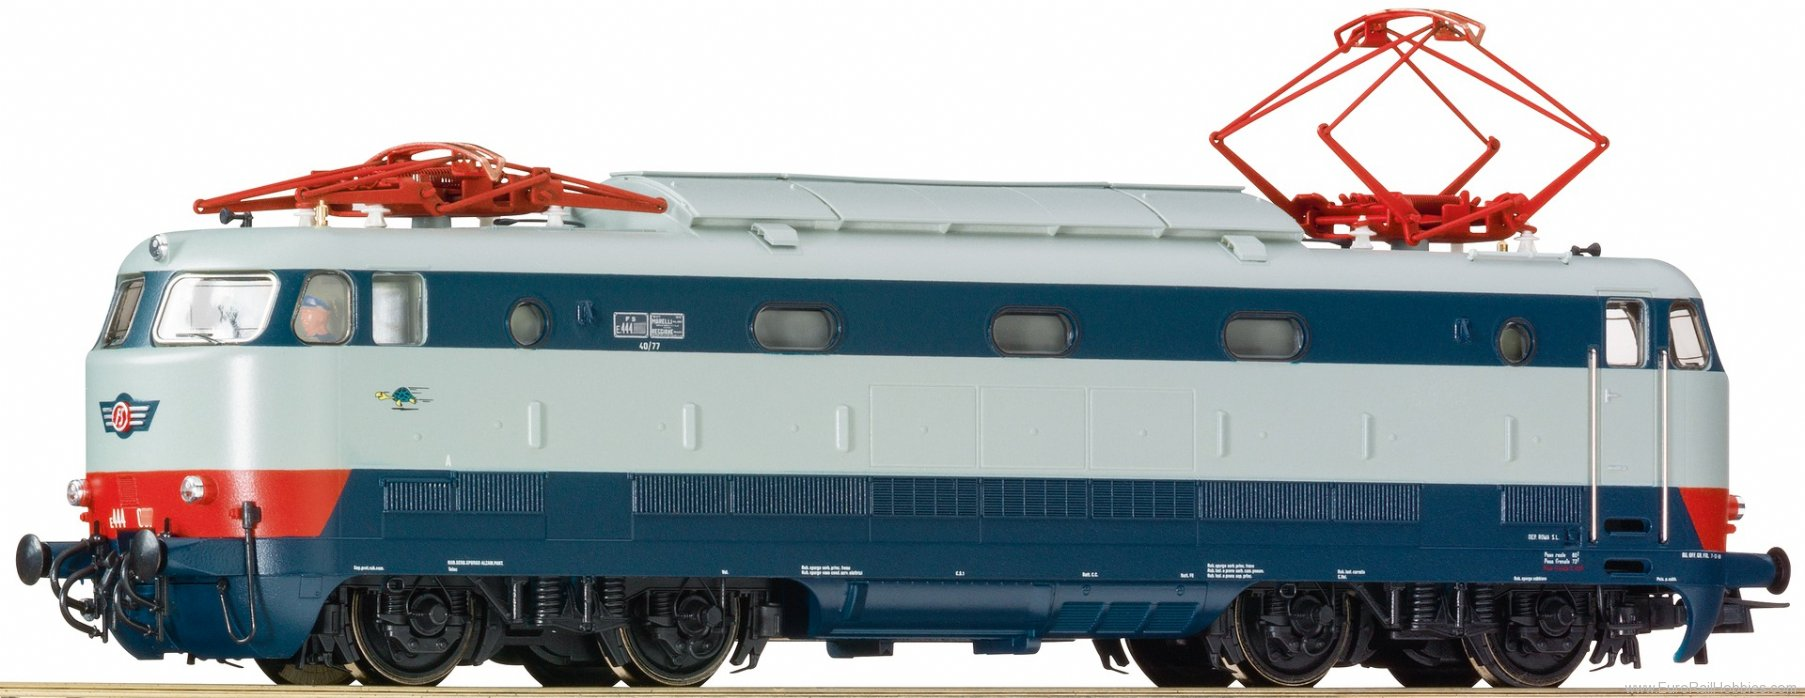 Roco 73346 Electric locomotive E.444, FS